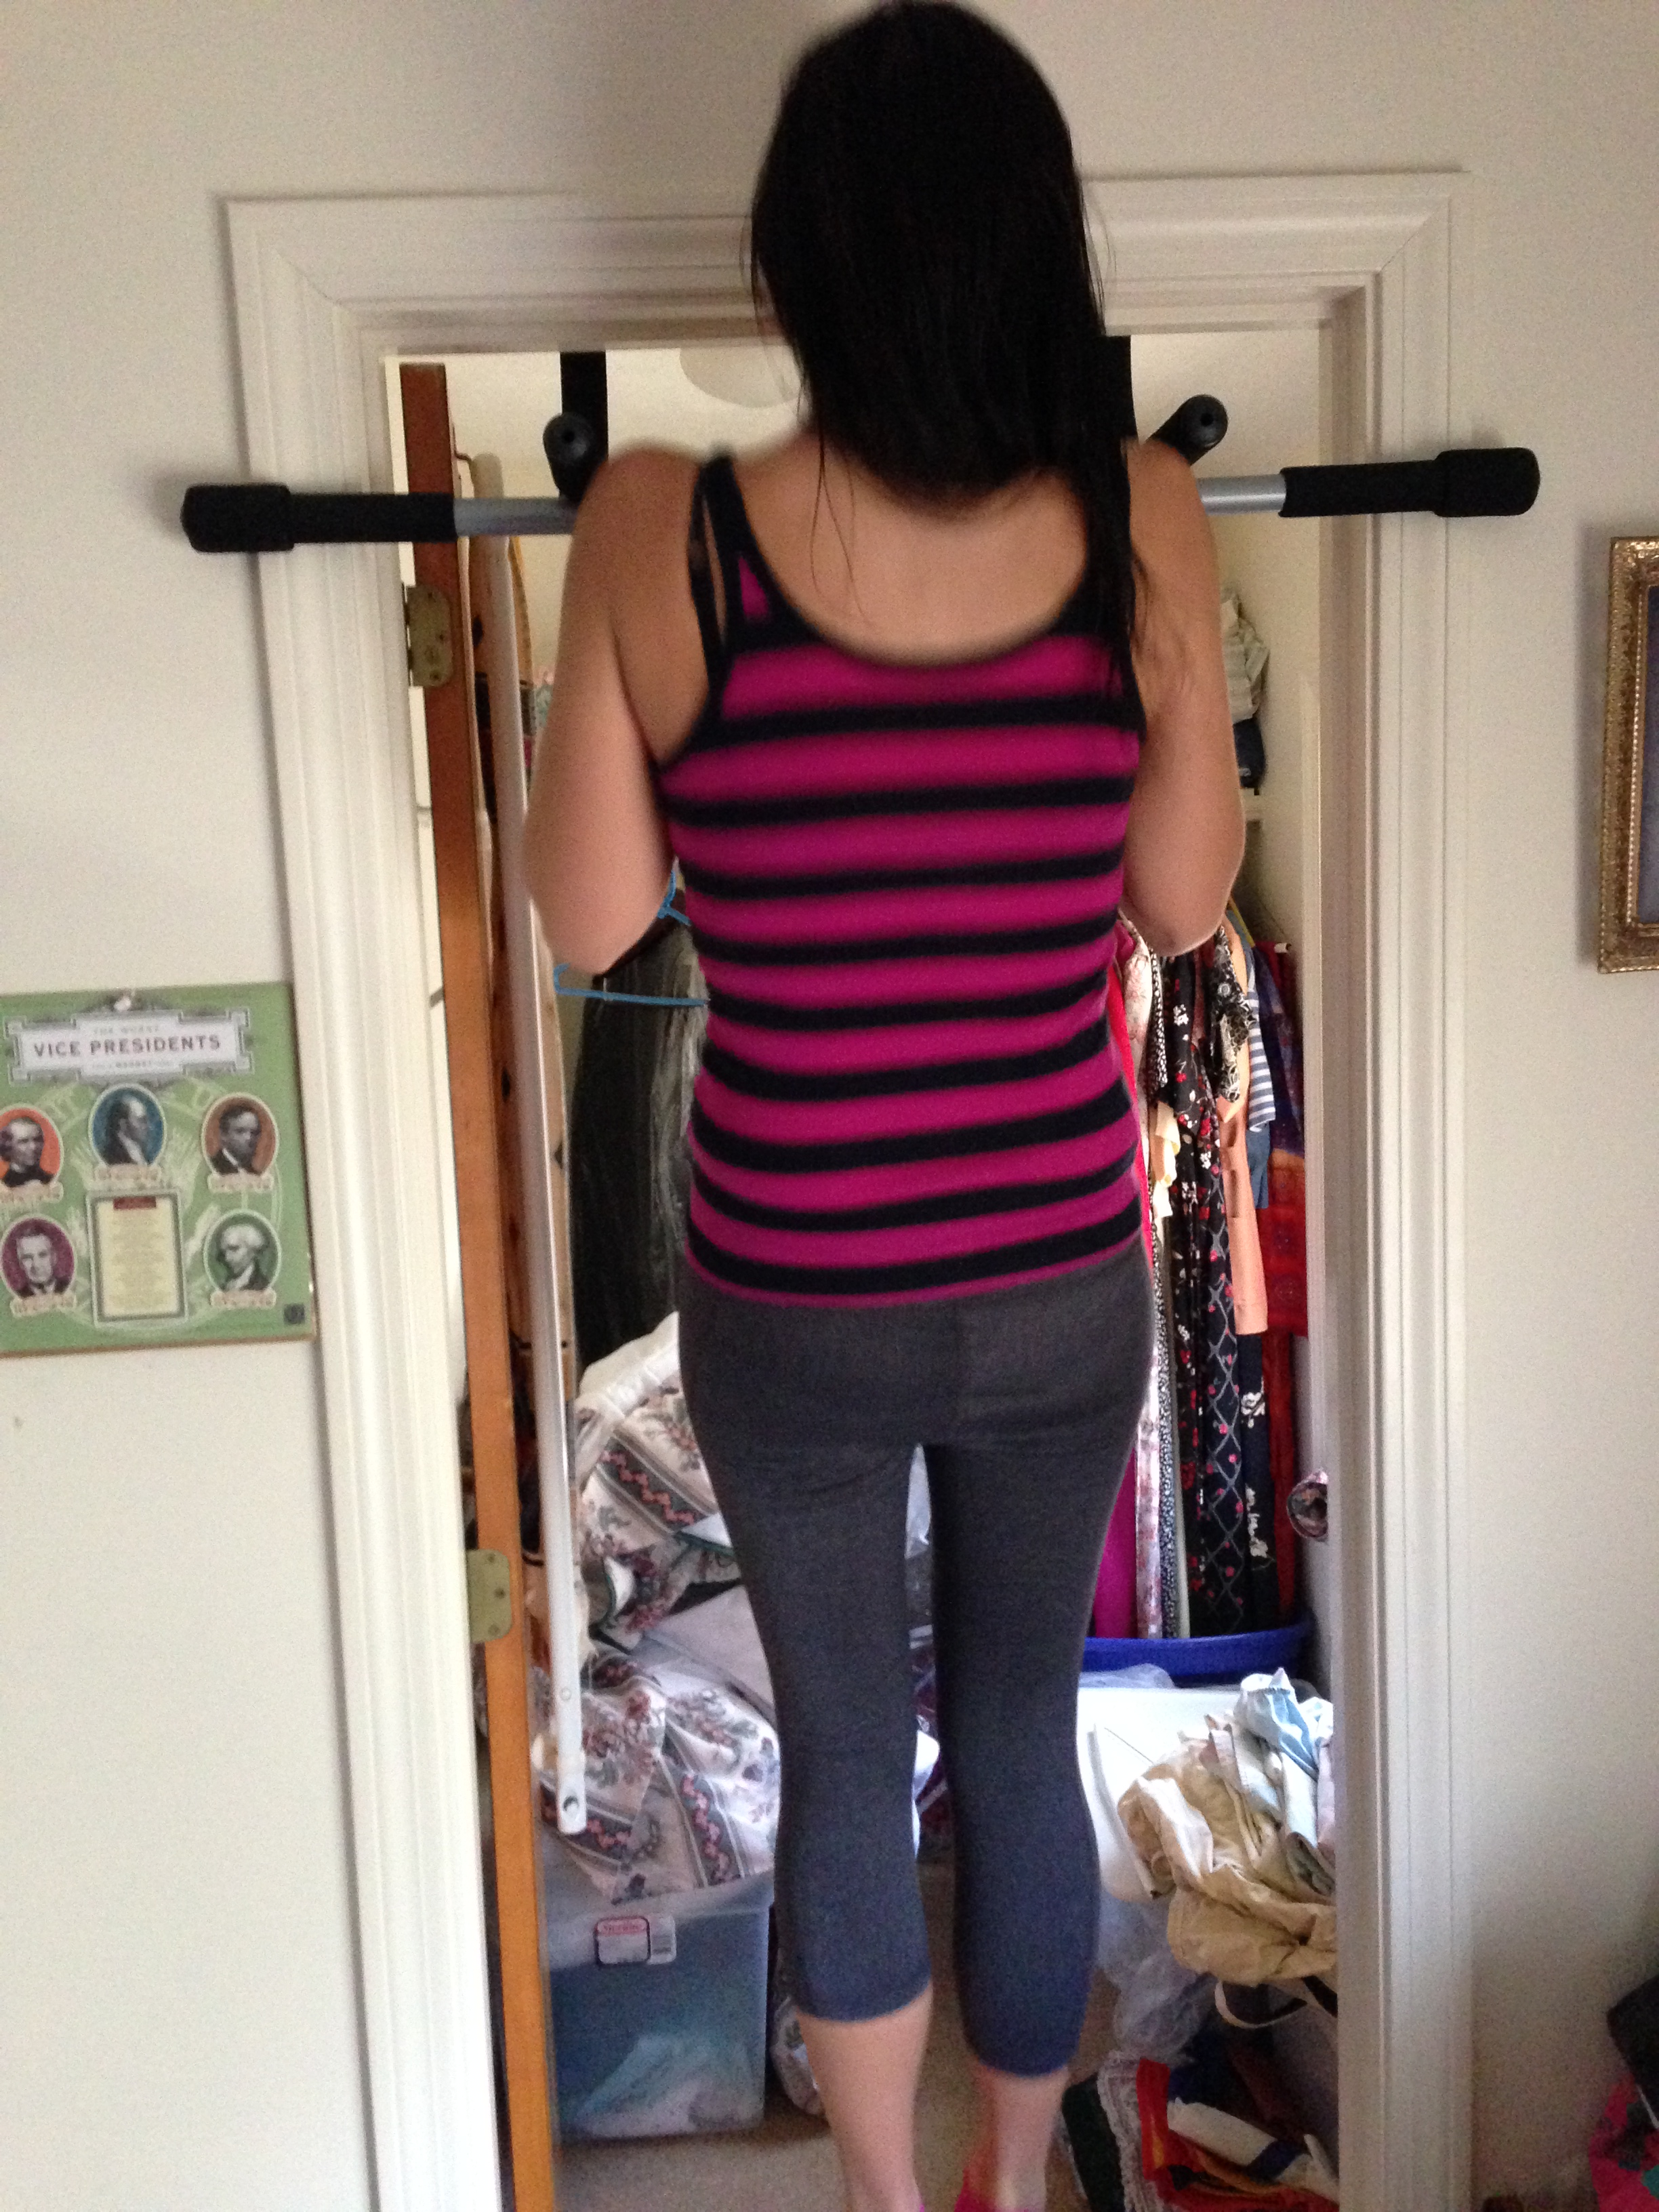 Family First: We didn't go to the gym once! Luckily, Deepak has installed this pull-up bar in the bedroom doorway. Yes, I can comfortably do 1.5 pullups. ~Still got it~